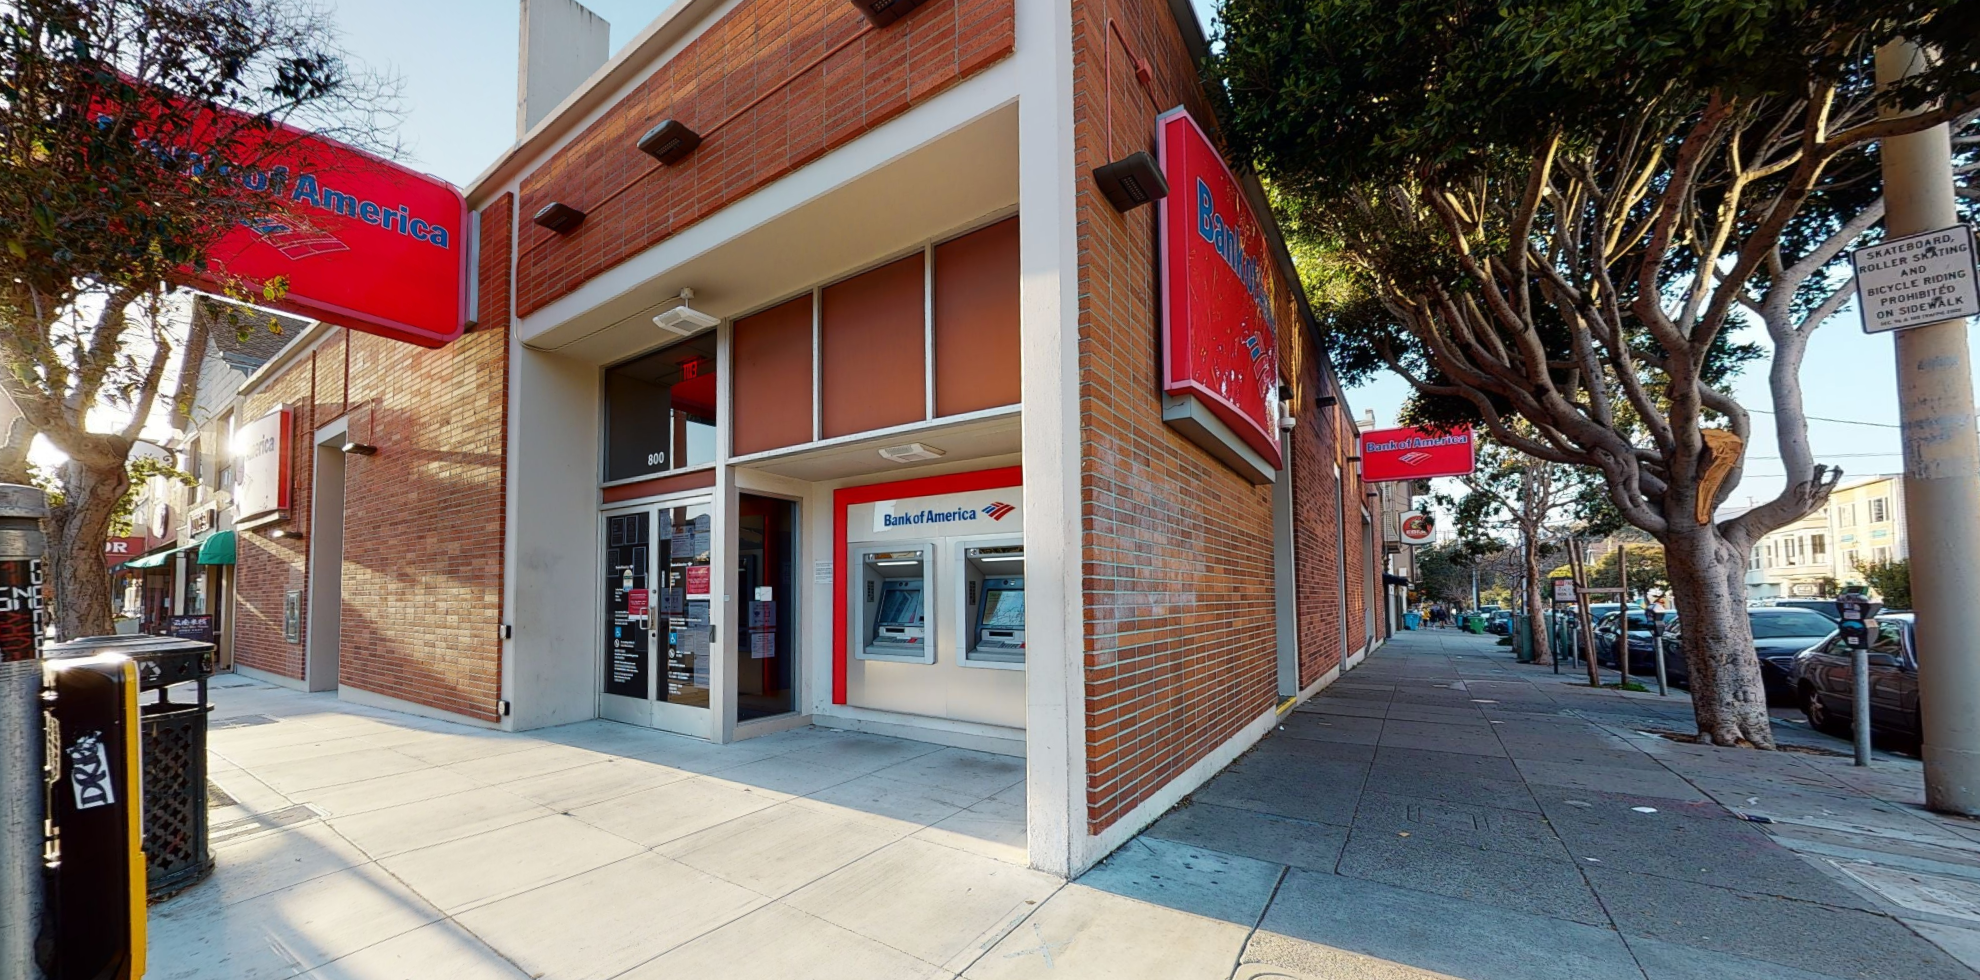 Bank of America financial center with walk-up ATM   800 Irving St, San Francisco, CA 94122